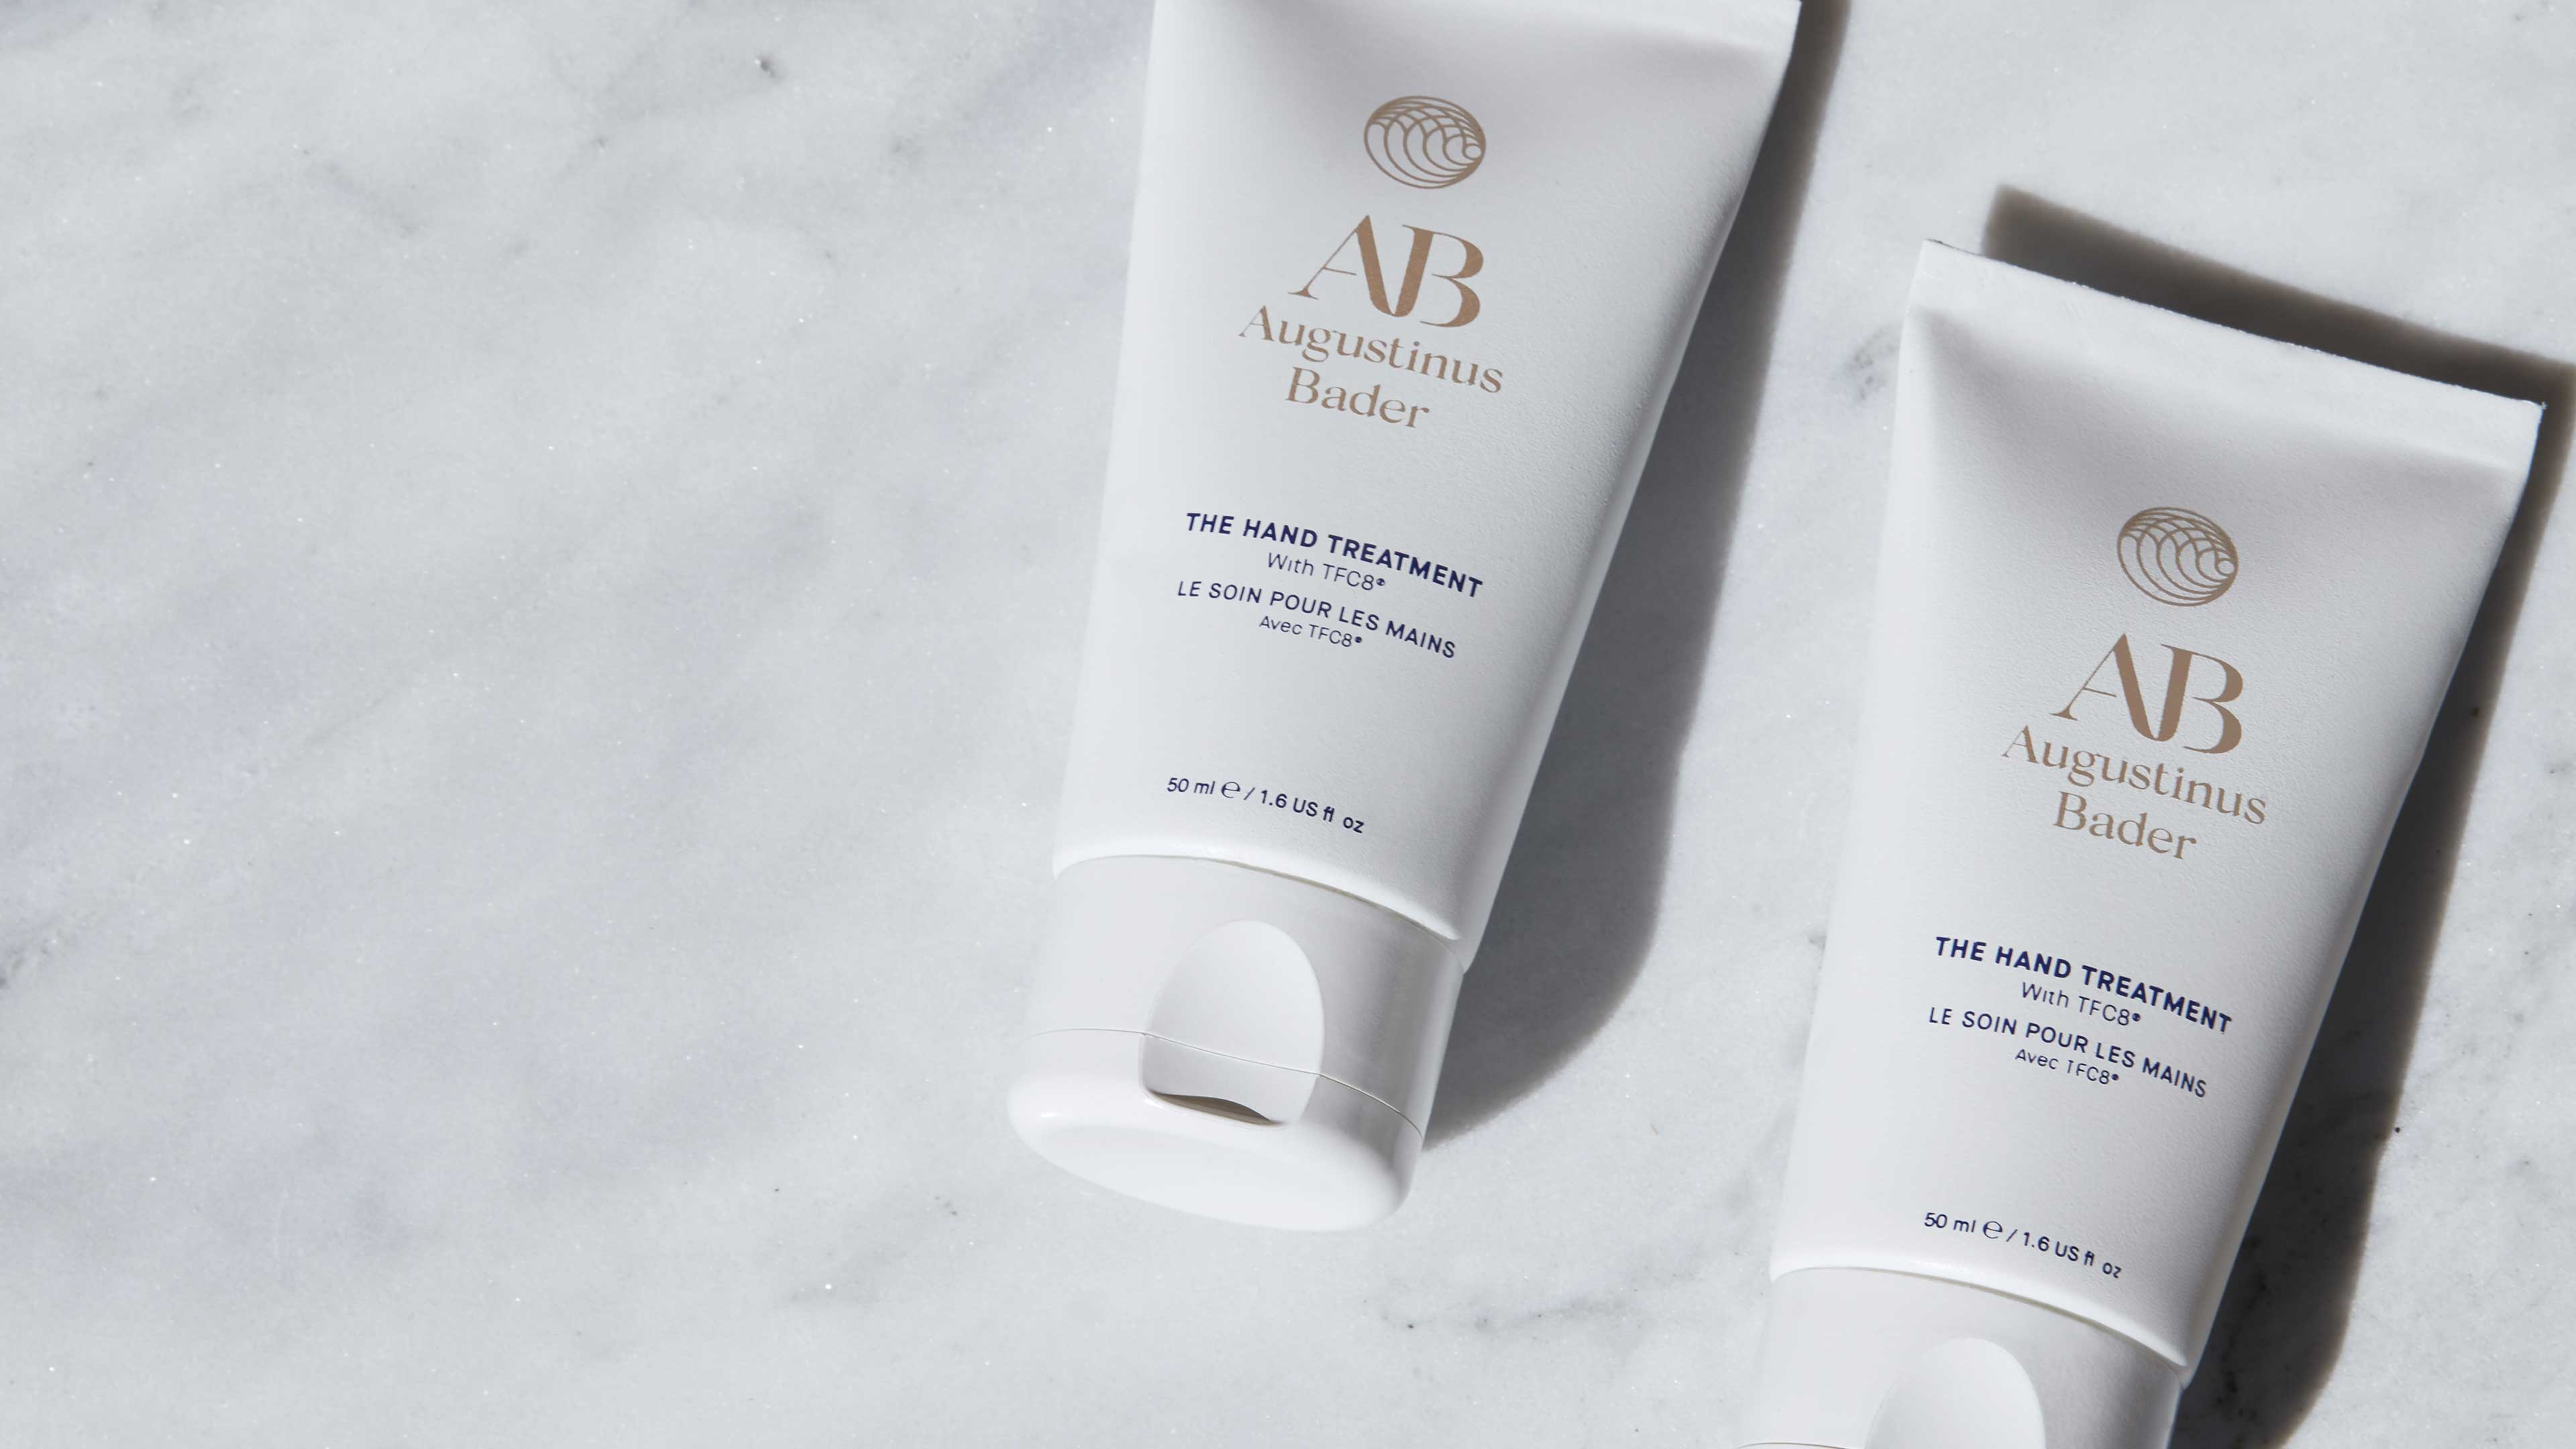 Vogue: This New Release From Augustinus Bader Could Just Rival Its Cult Cream